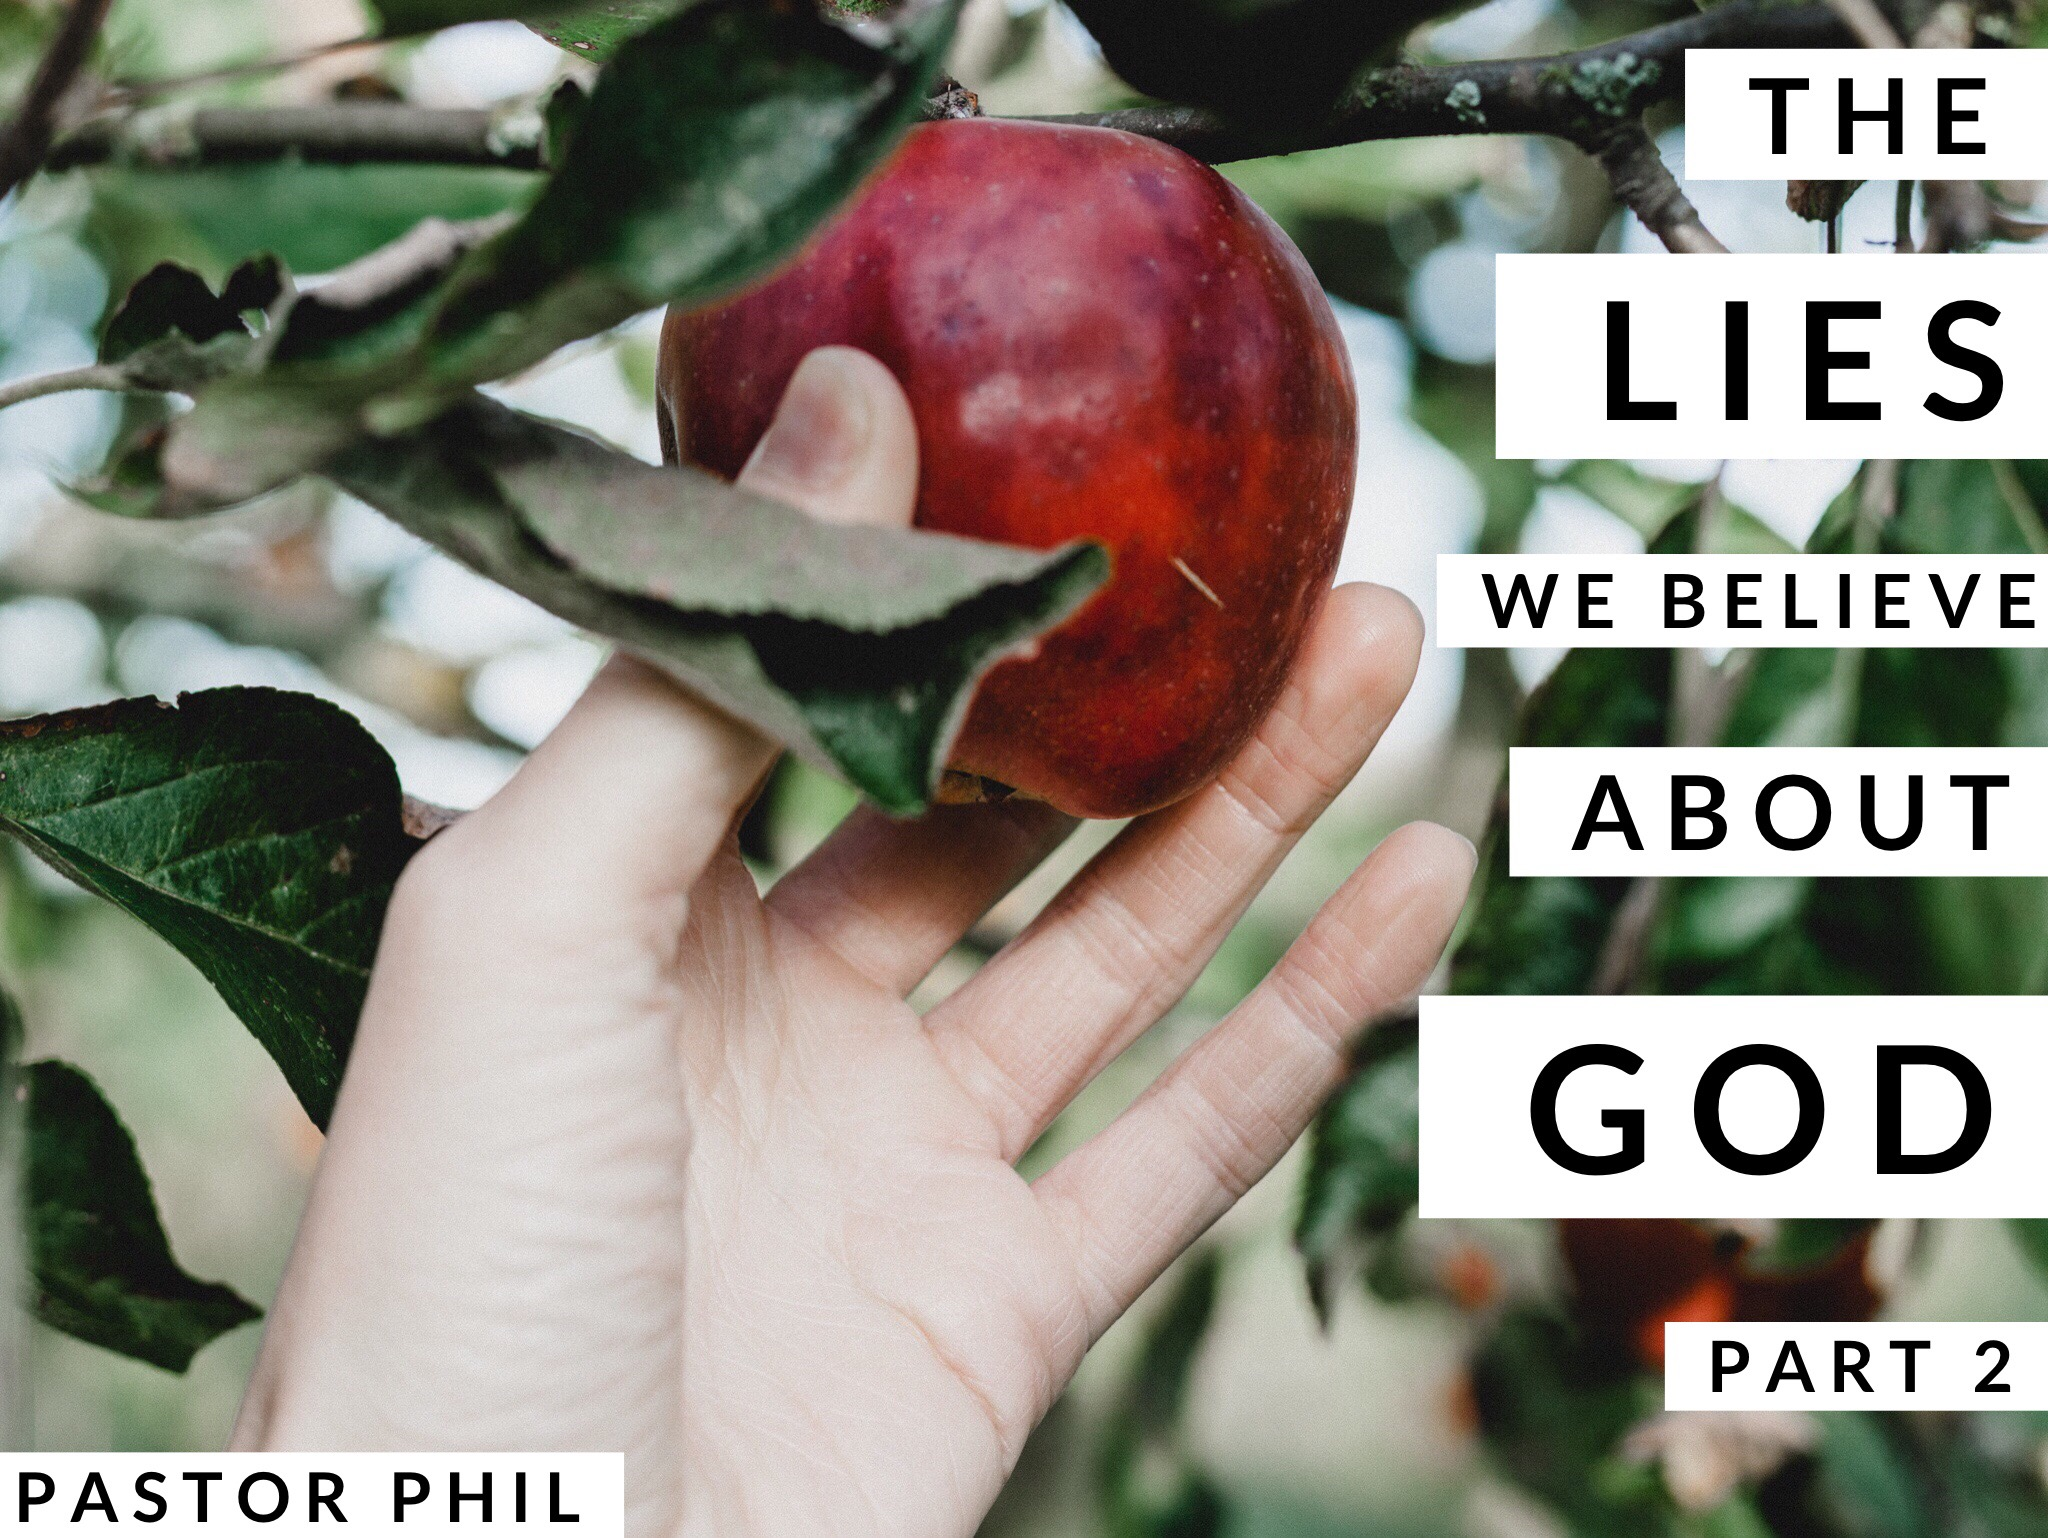 The Lies We Believe About God Pt 2